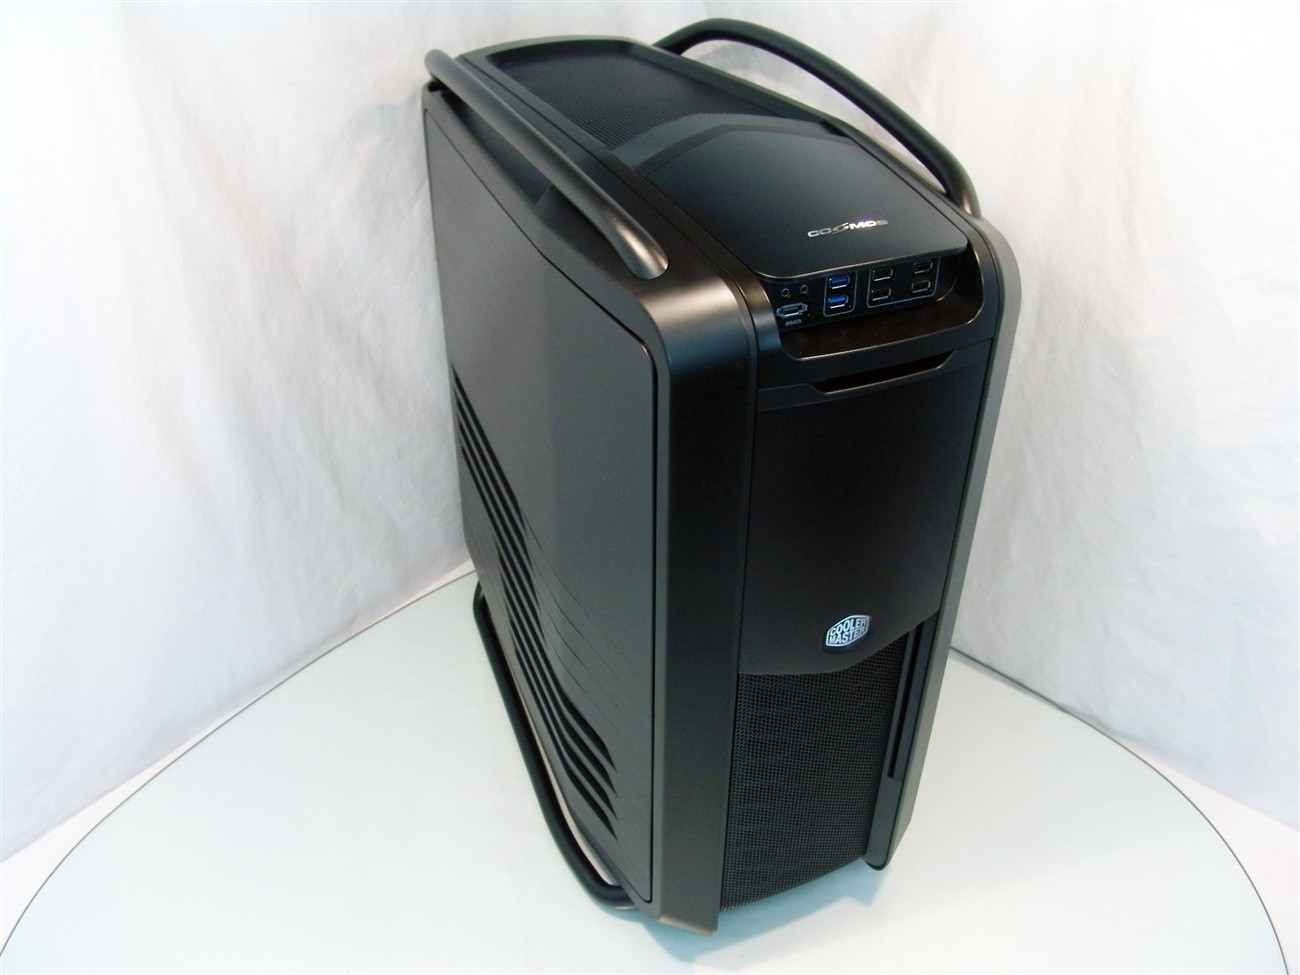 cooler_master_cosmos_ii_ultra_tower_chassis_review